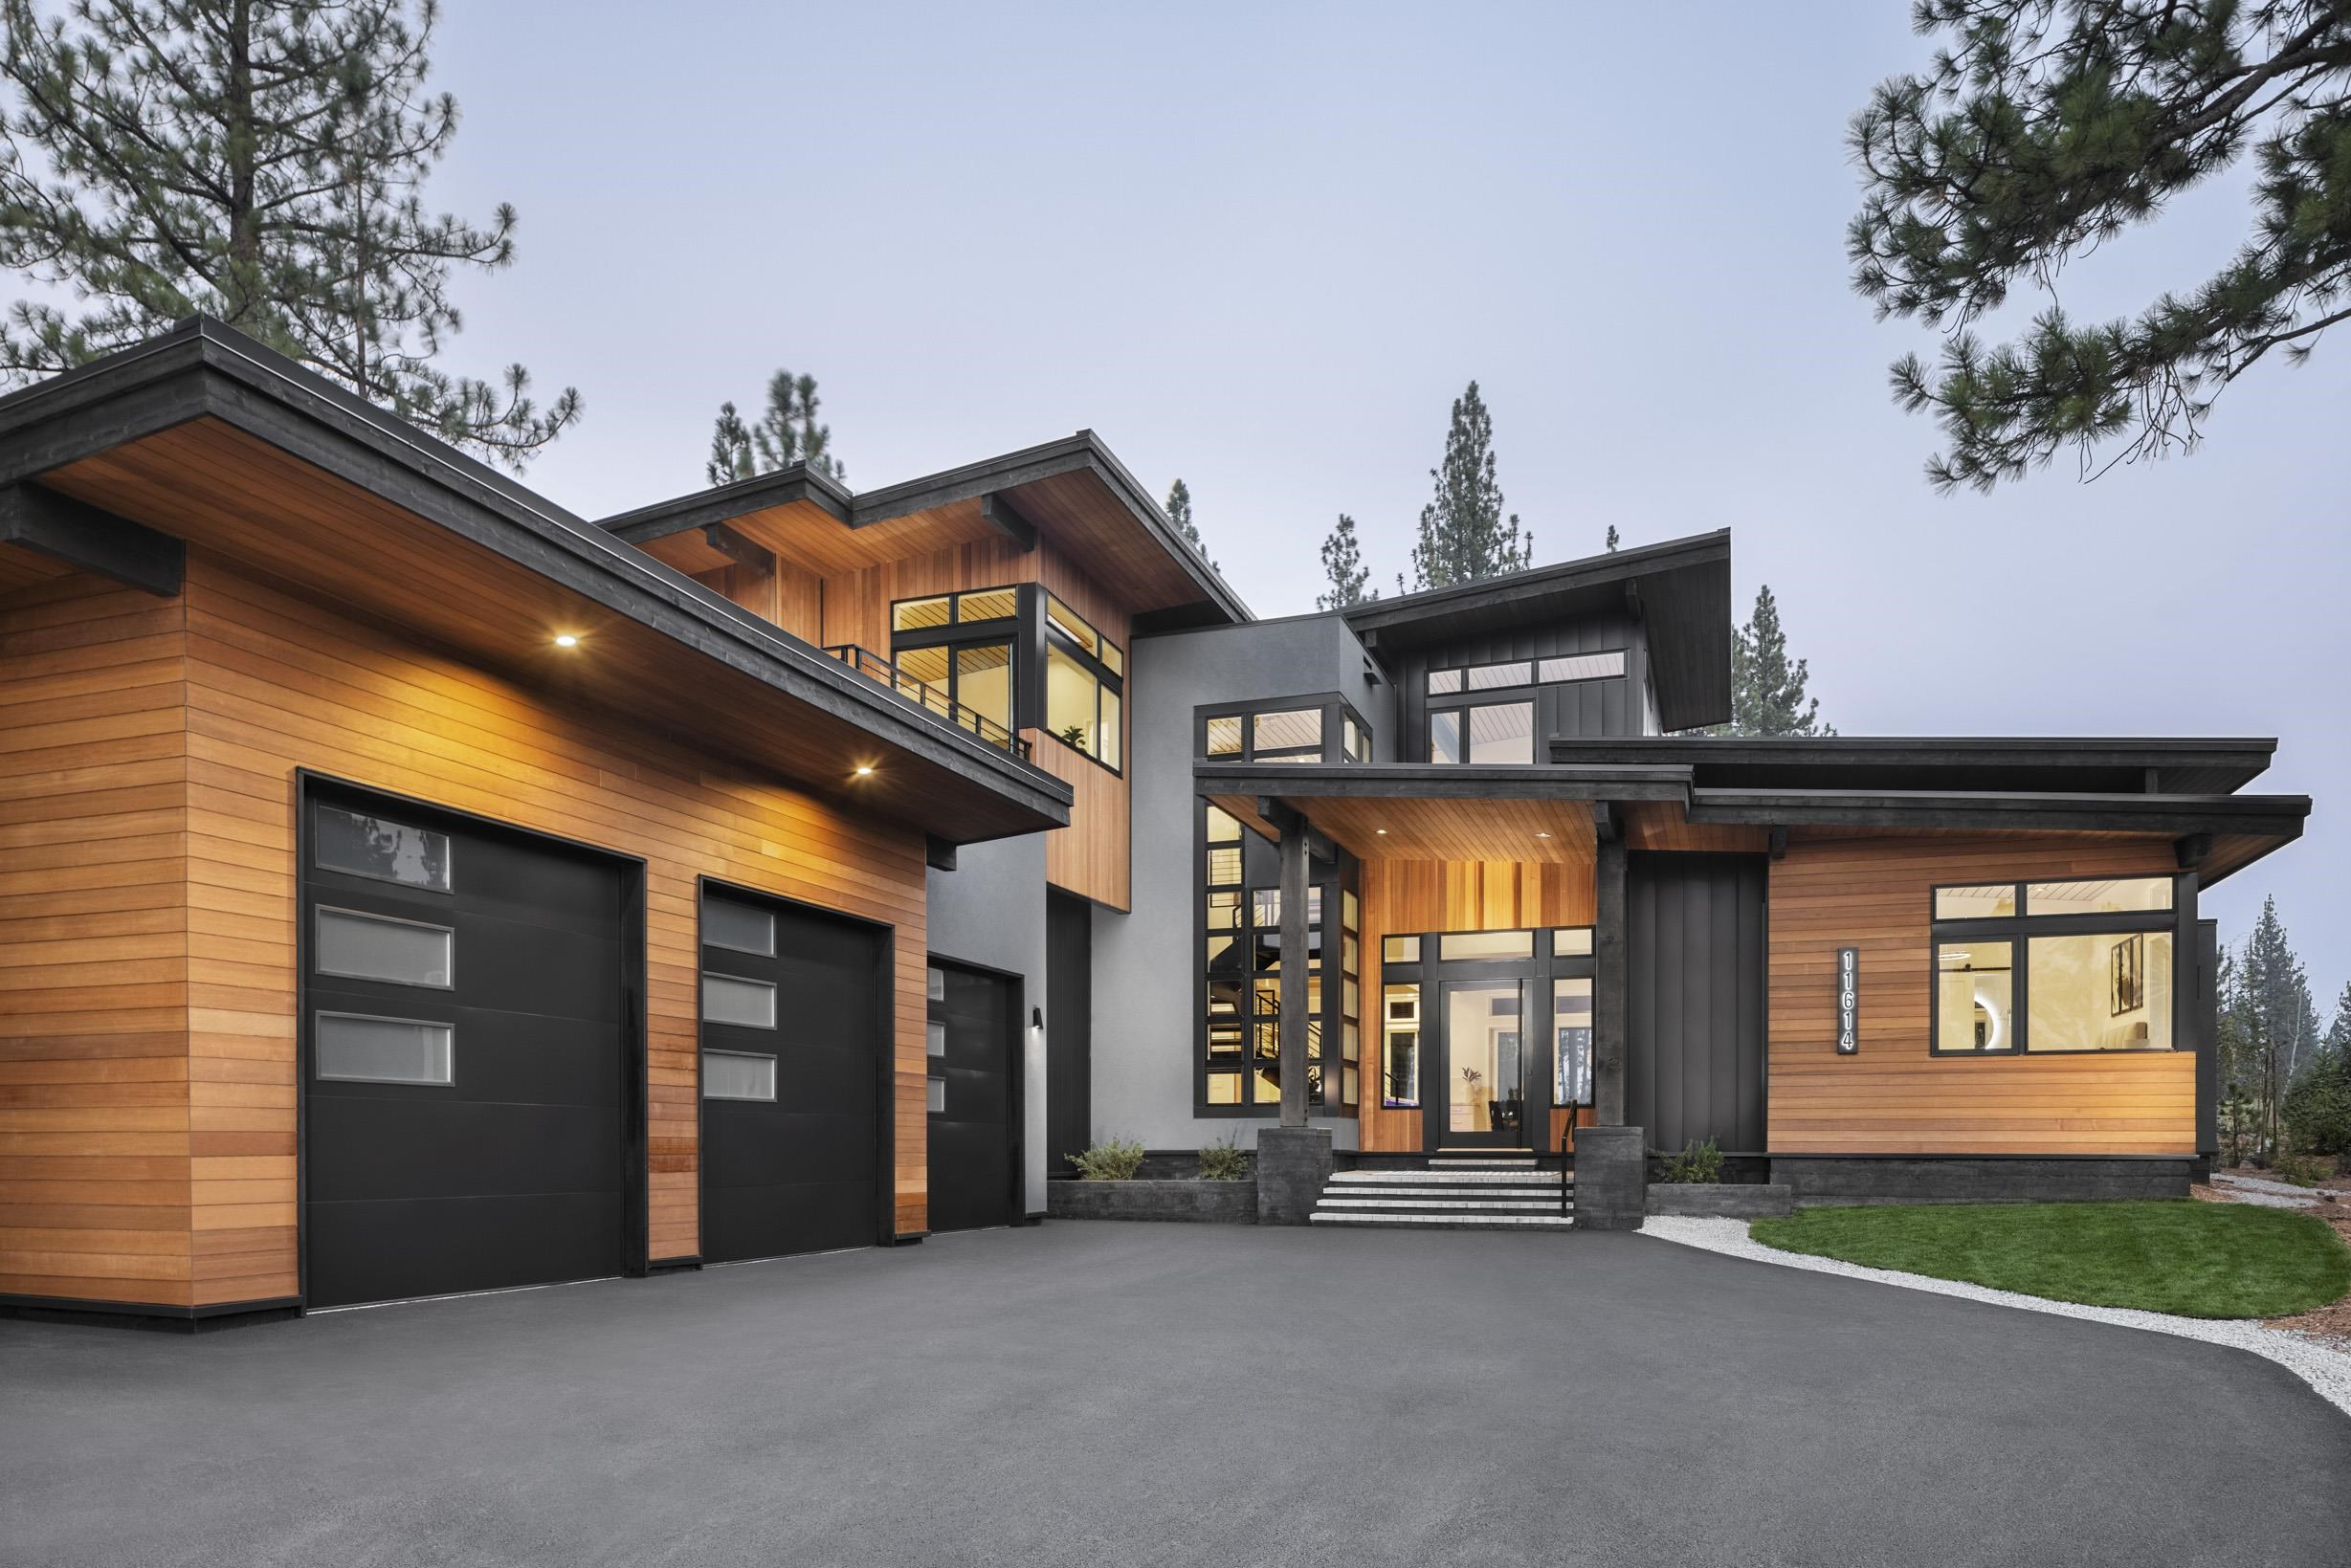 Image for 11614 Henness Road, Truckee, CA 96161-2903